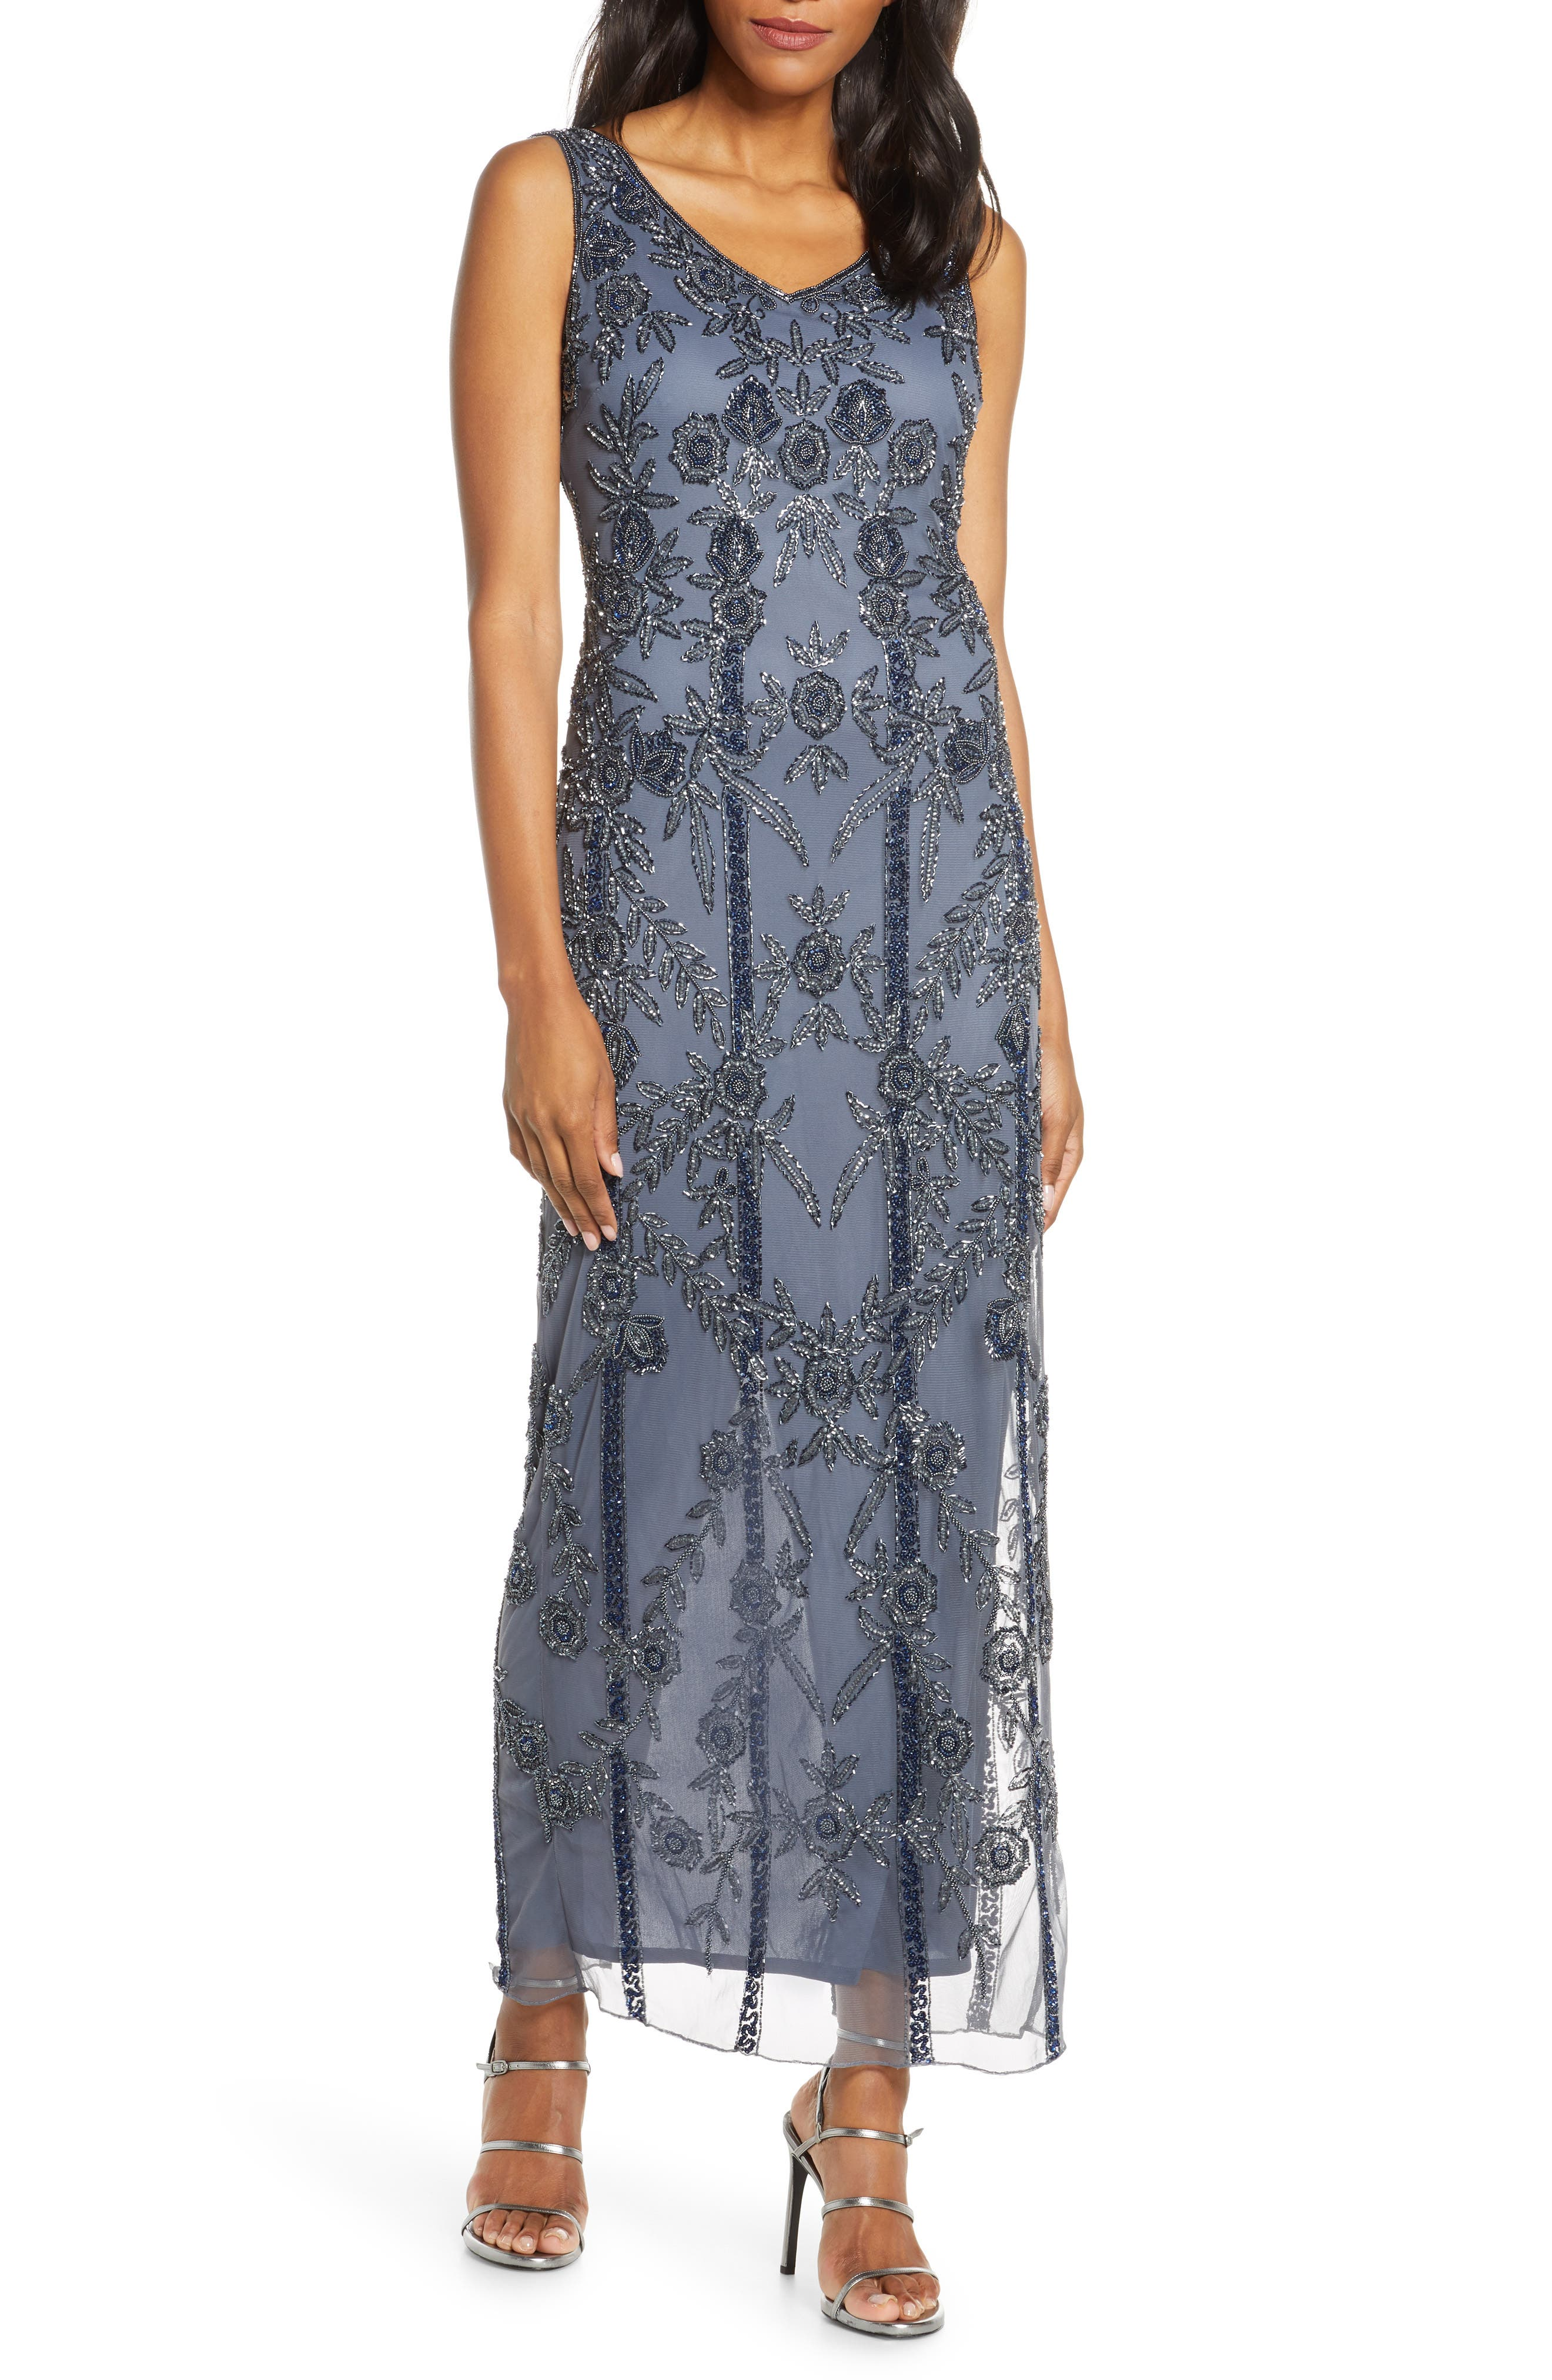 Vintage 1920s Dresses – Where to Buy Womens Pisarro Nights Beaded Mesh Gown $238.00 AT vintagedancer.com